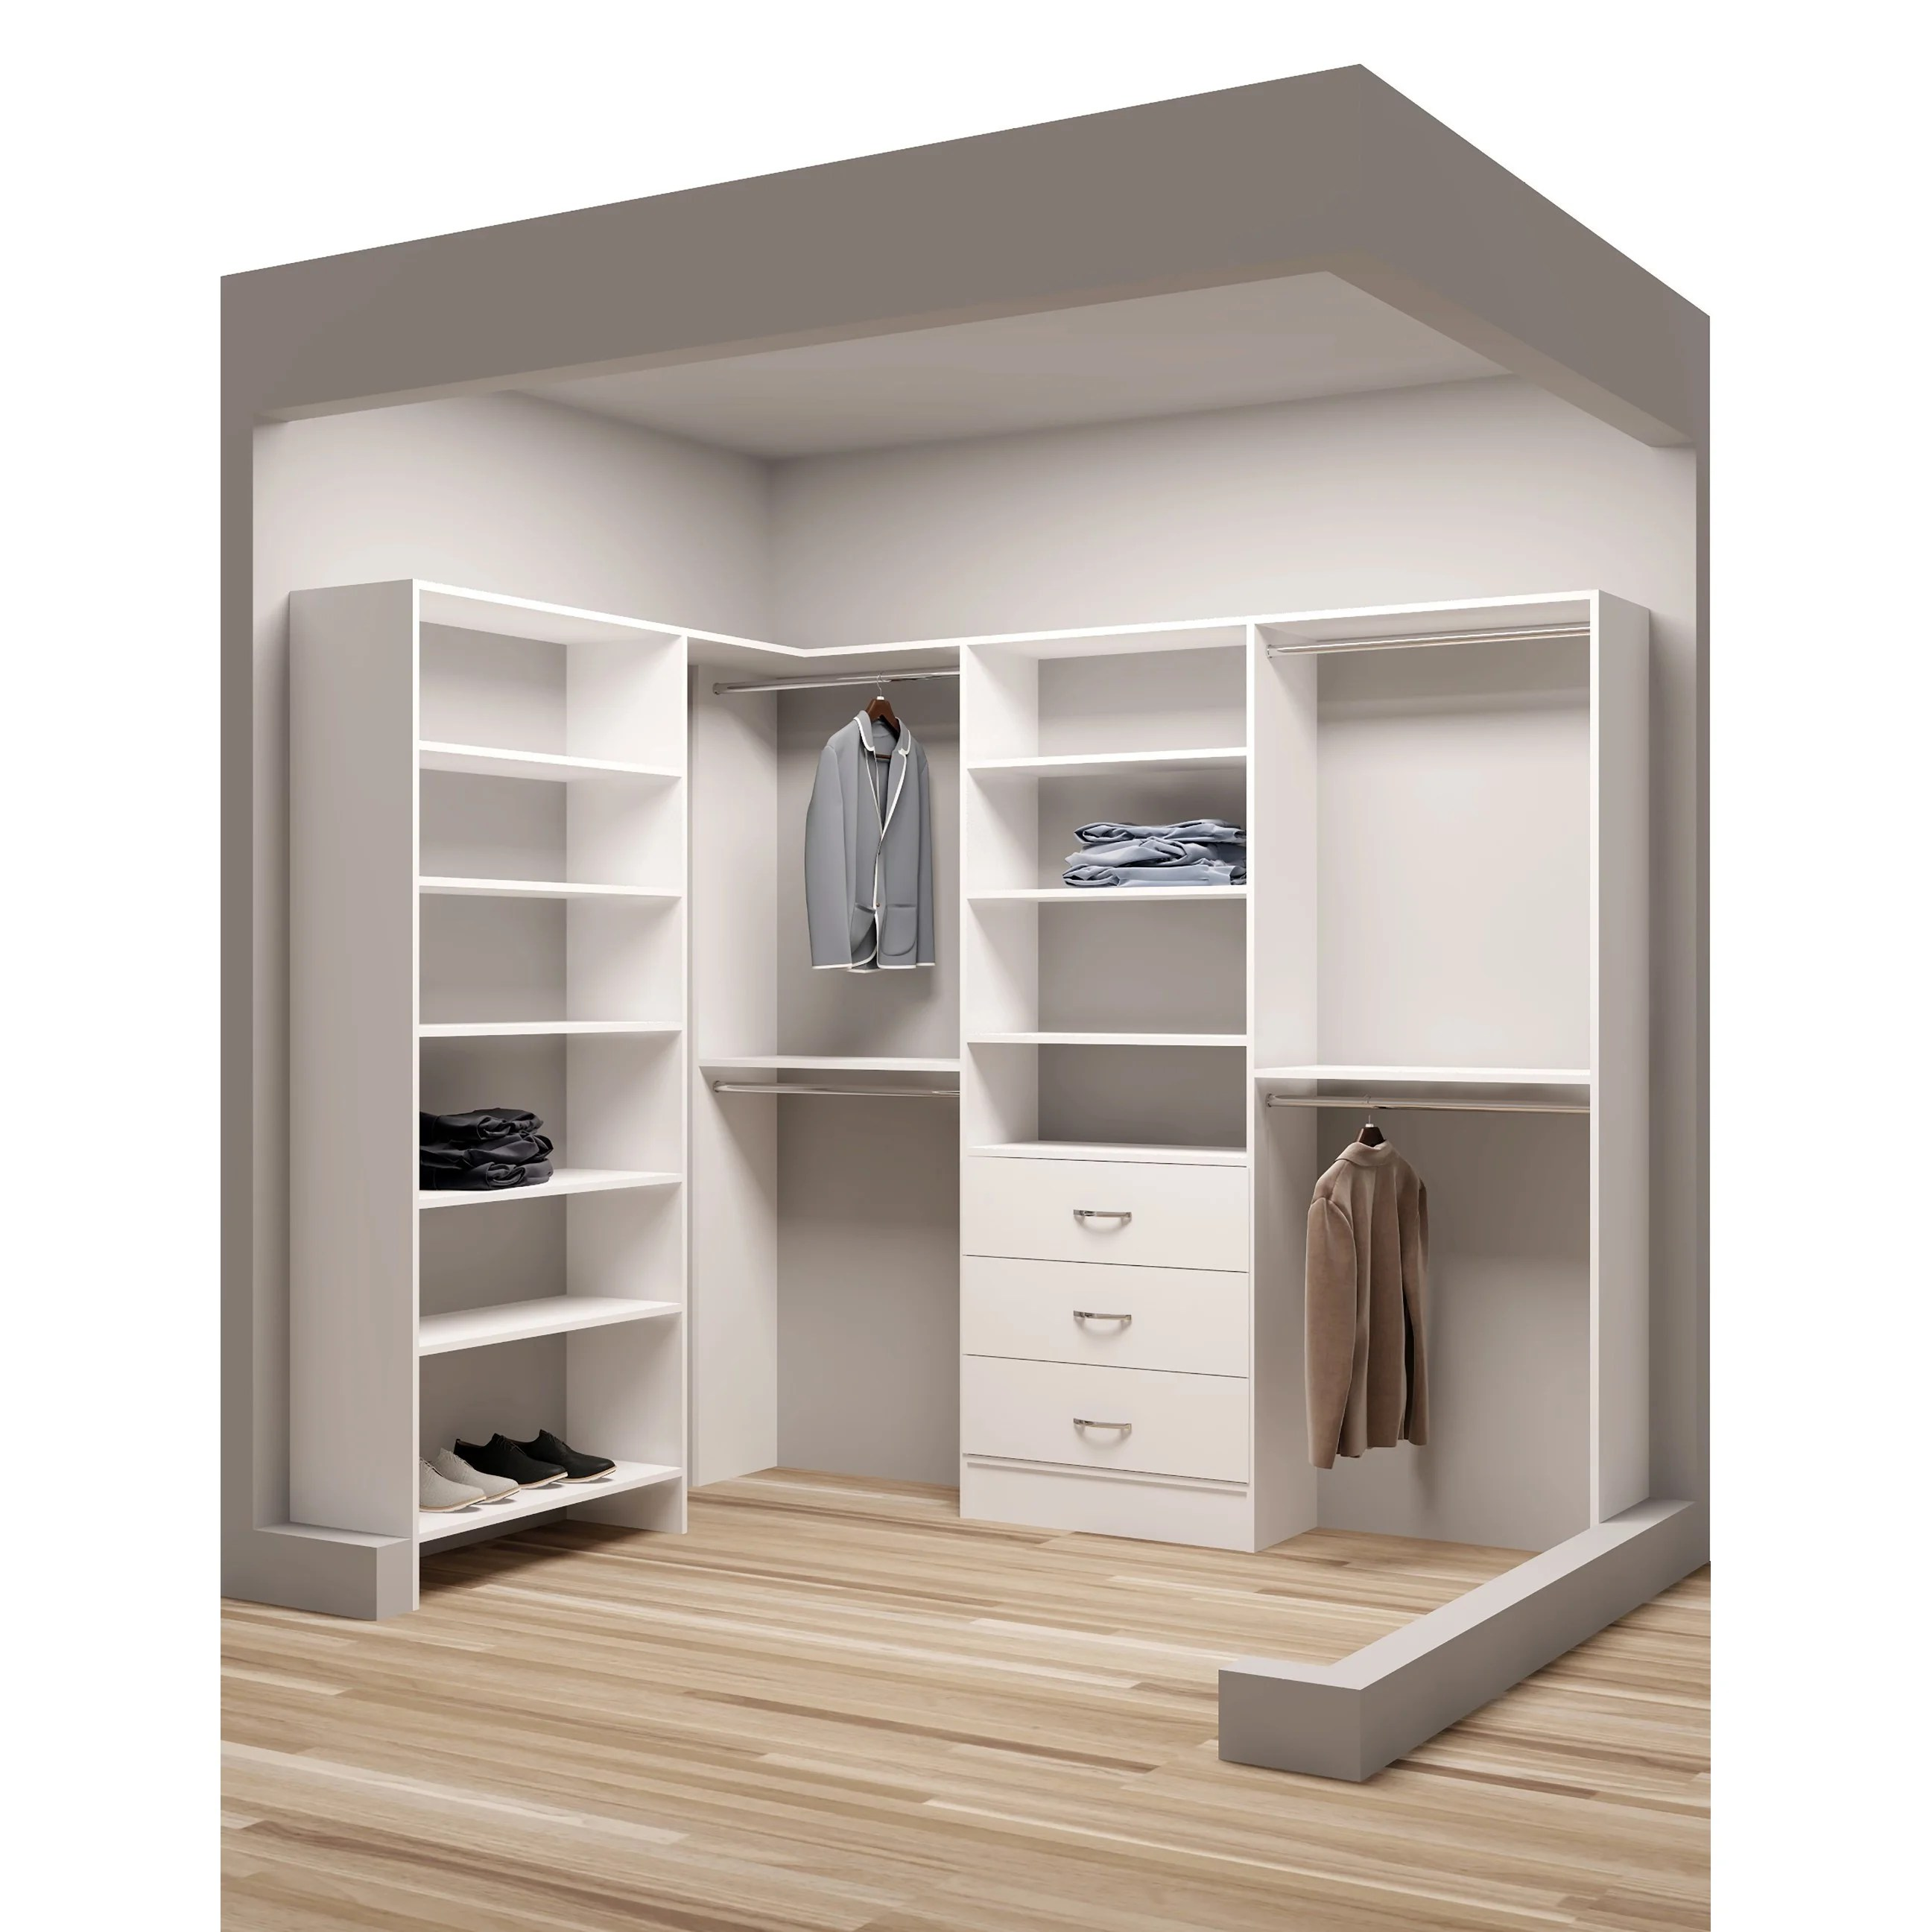 Walkin Closet Cabinets Tidysquares White Wood 67 X 93